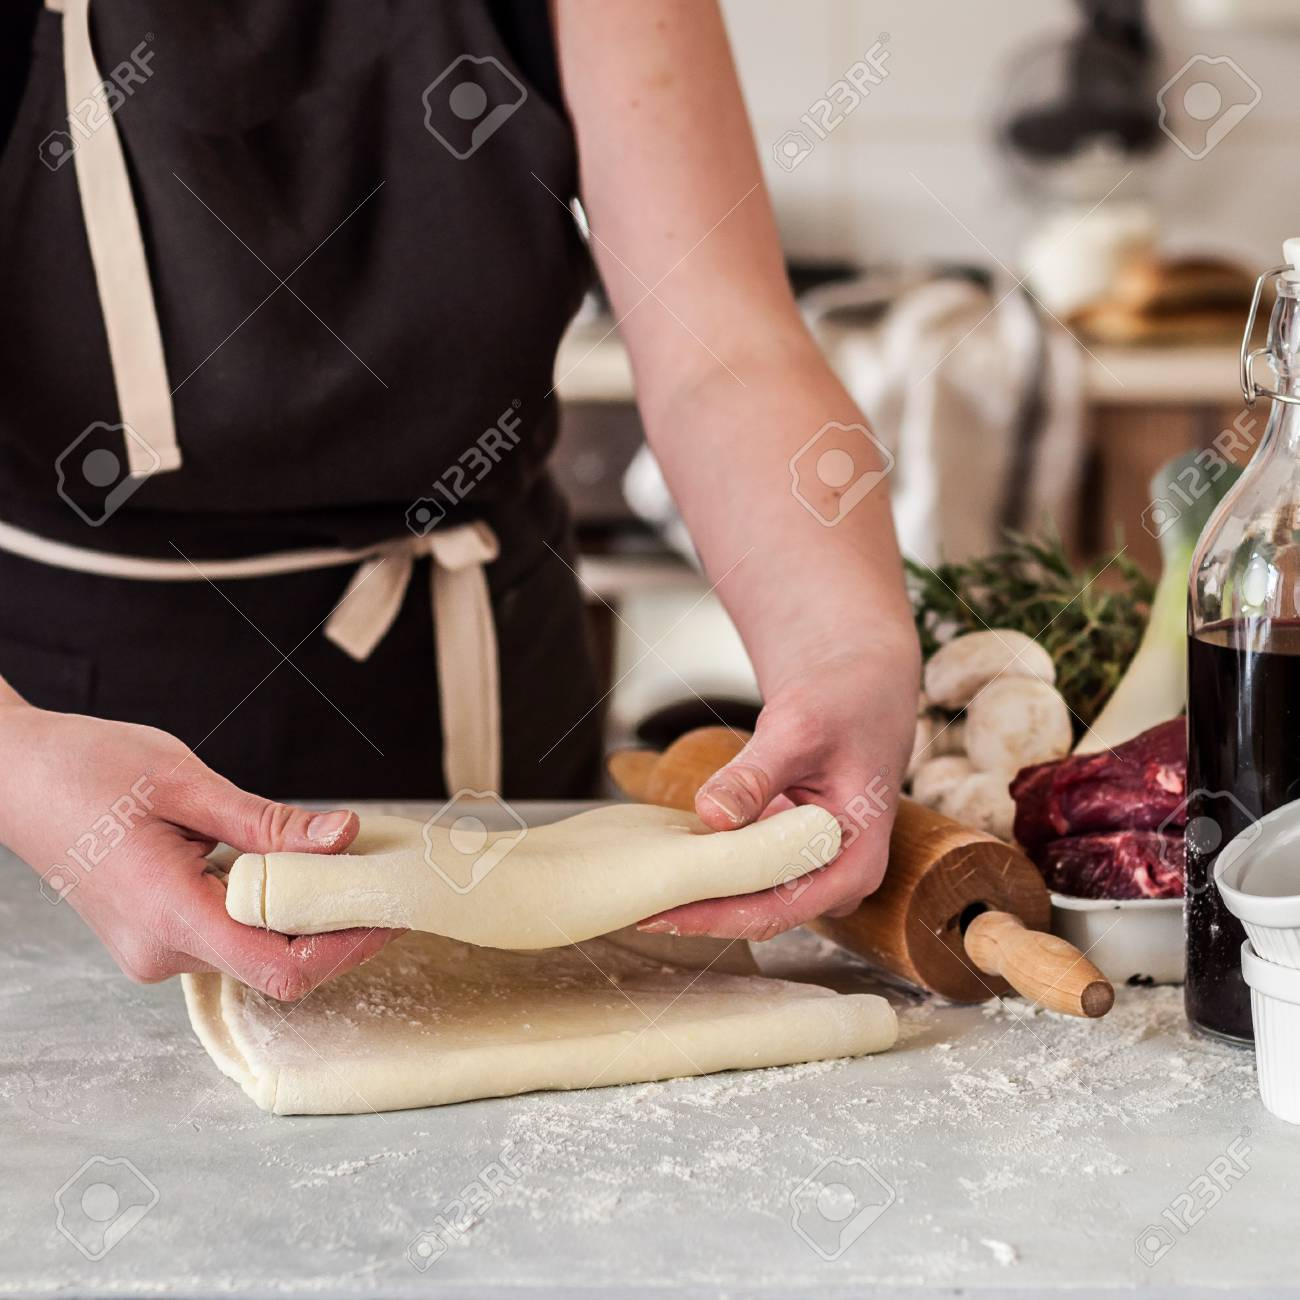 A Woman Making Puff Pastry Dough for Meat Pies, square Stock Photo - 94735056